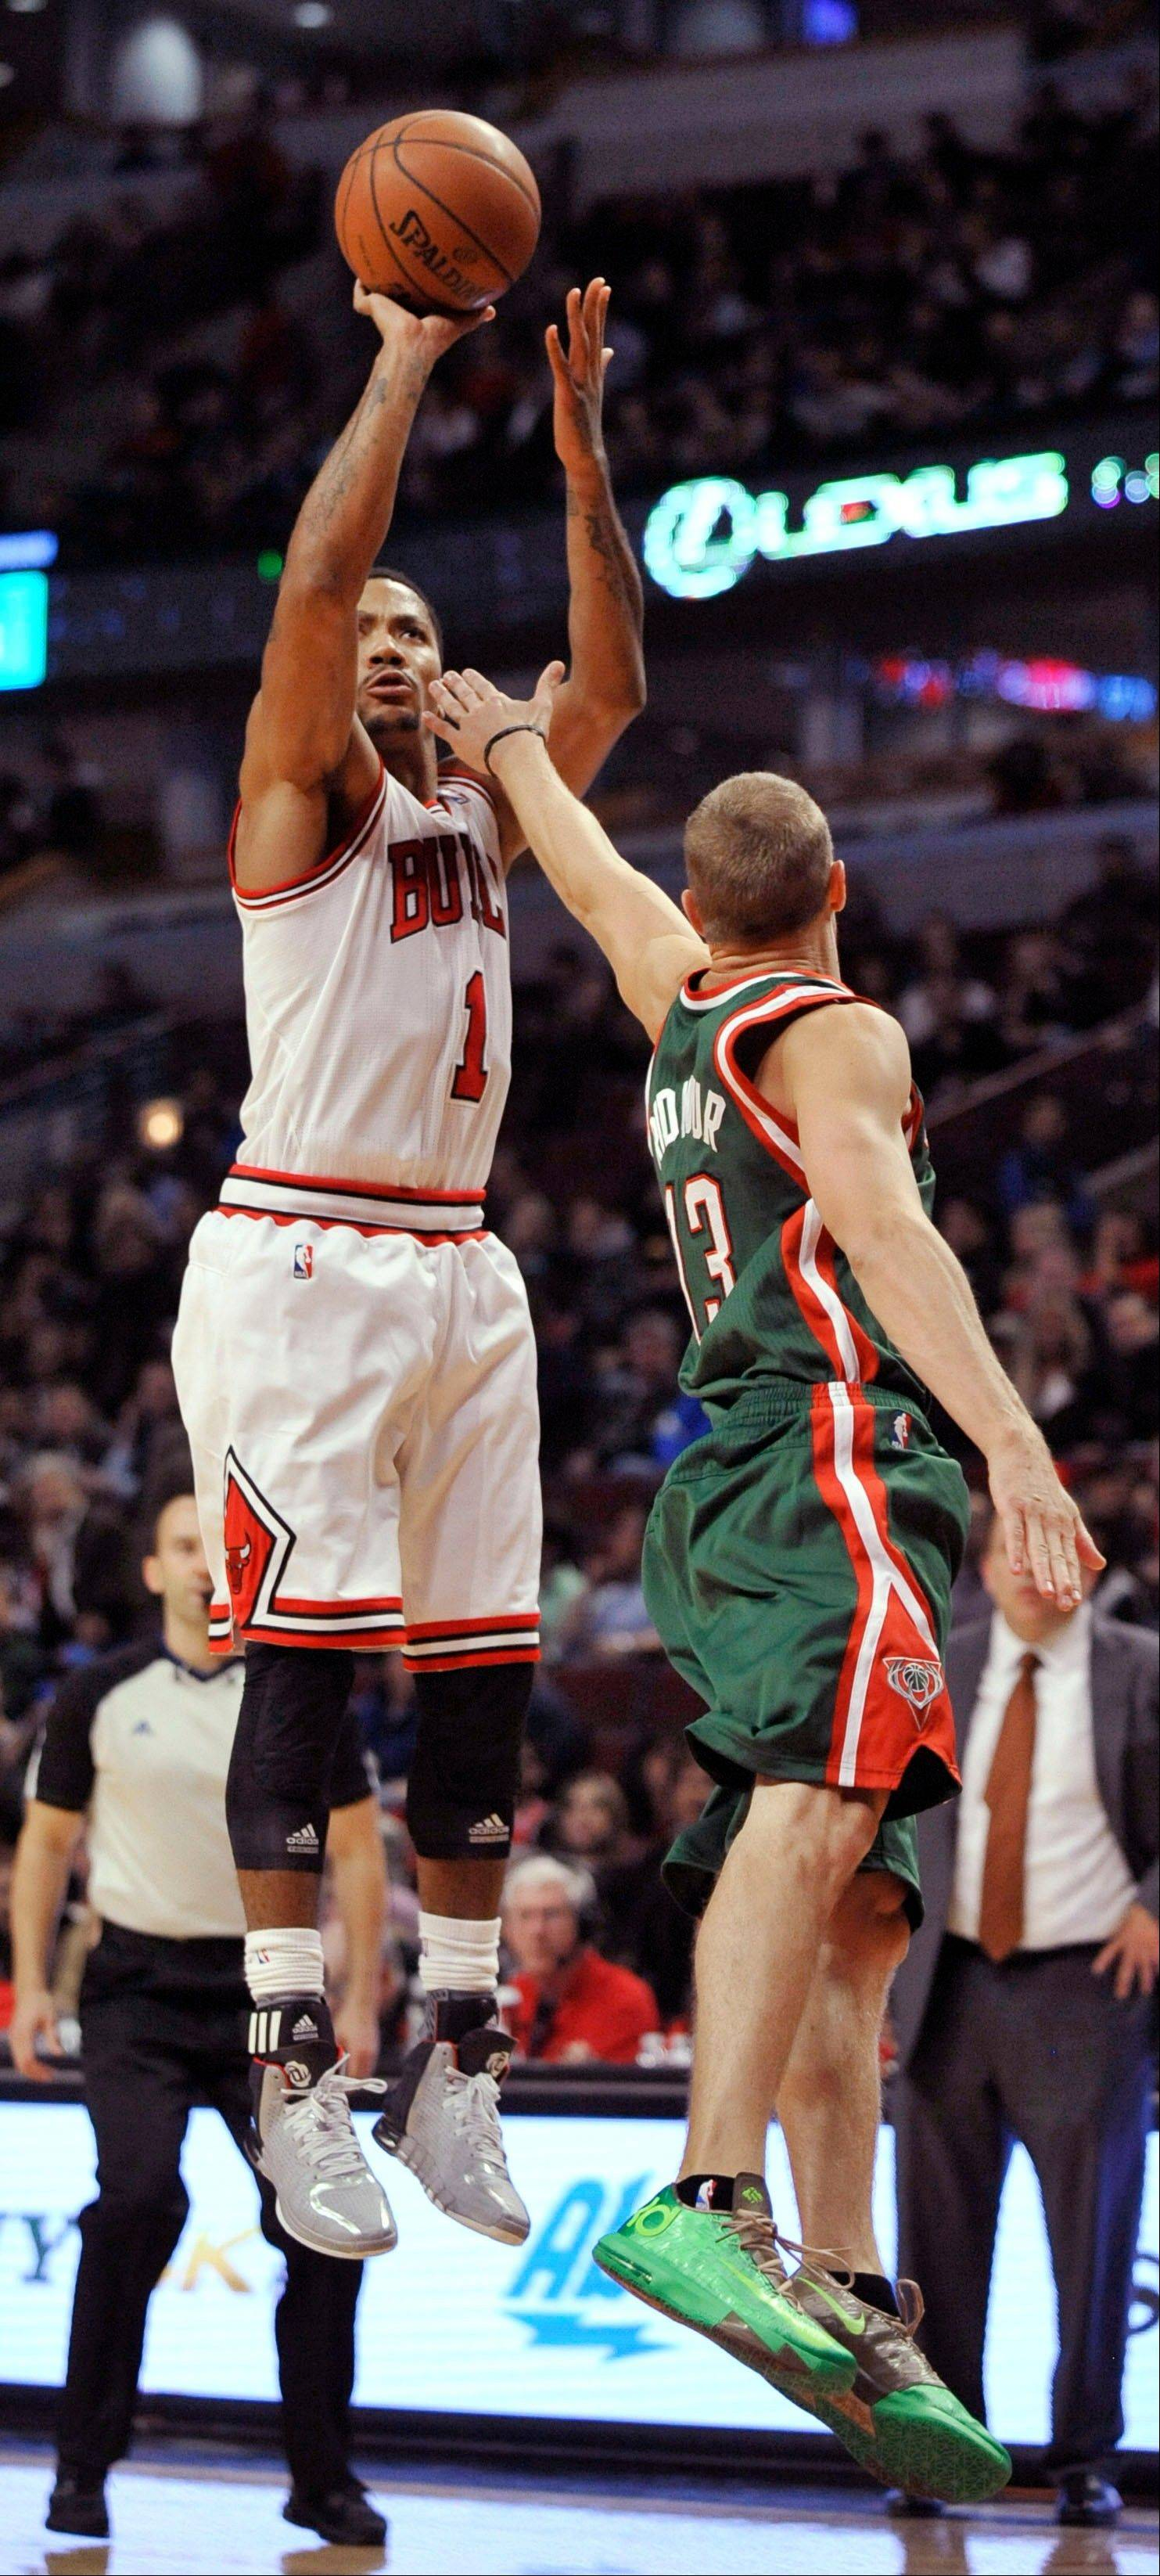 In a GM survey released Tuesday, Bulls guard Derrick Rose was voted the second-best point guard in the NBA.